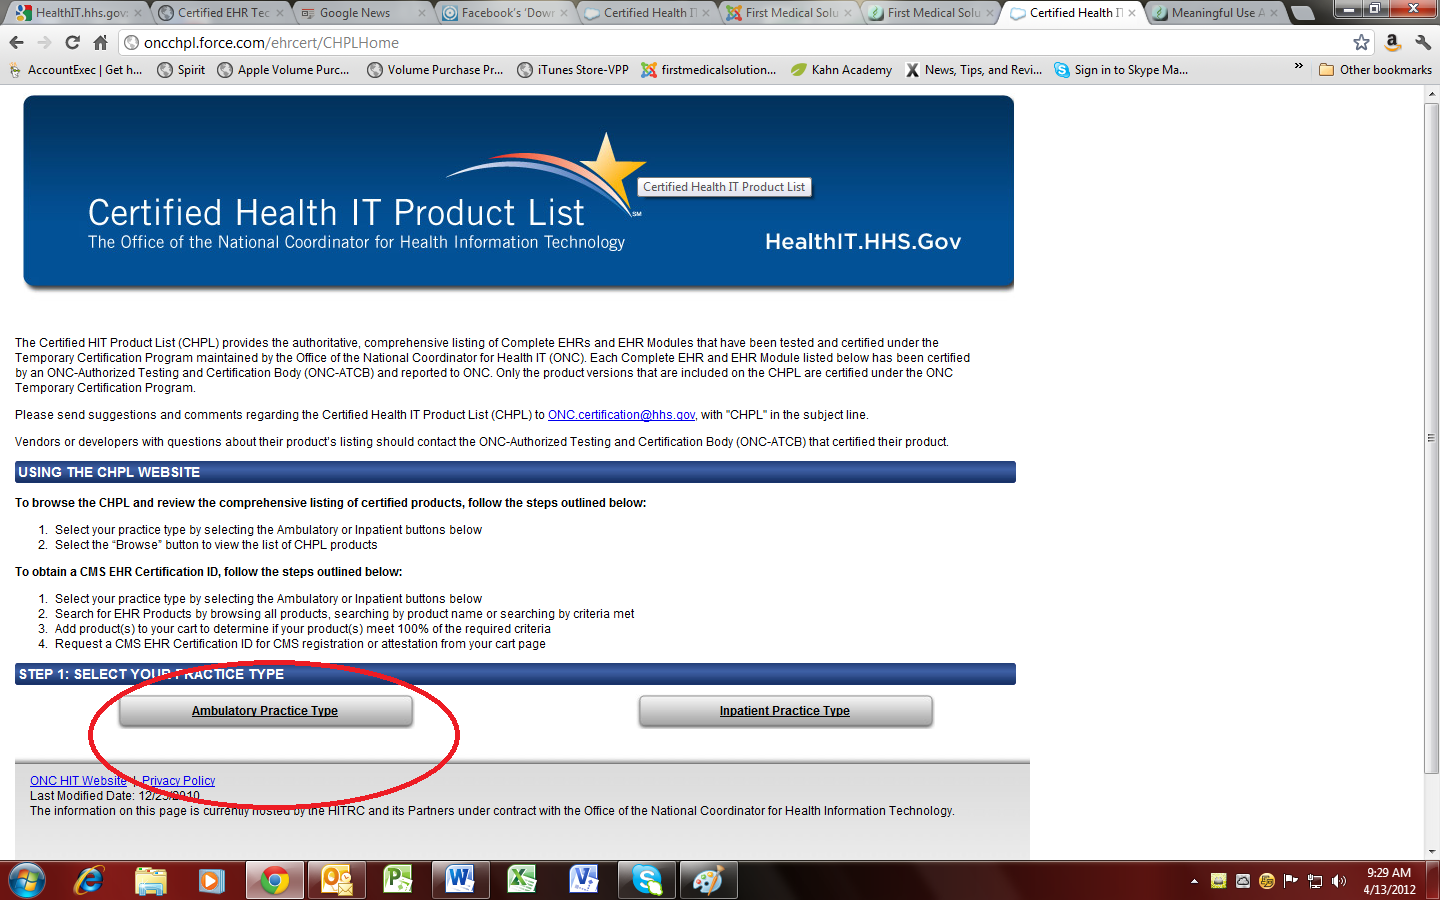 Meaningful use step by step guide to get the required cms ehr certification id 1betcityfo Images